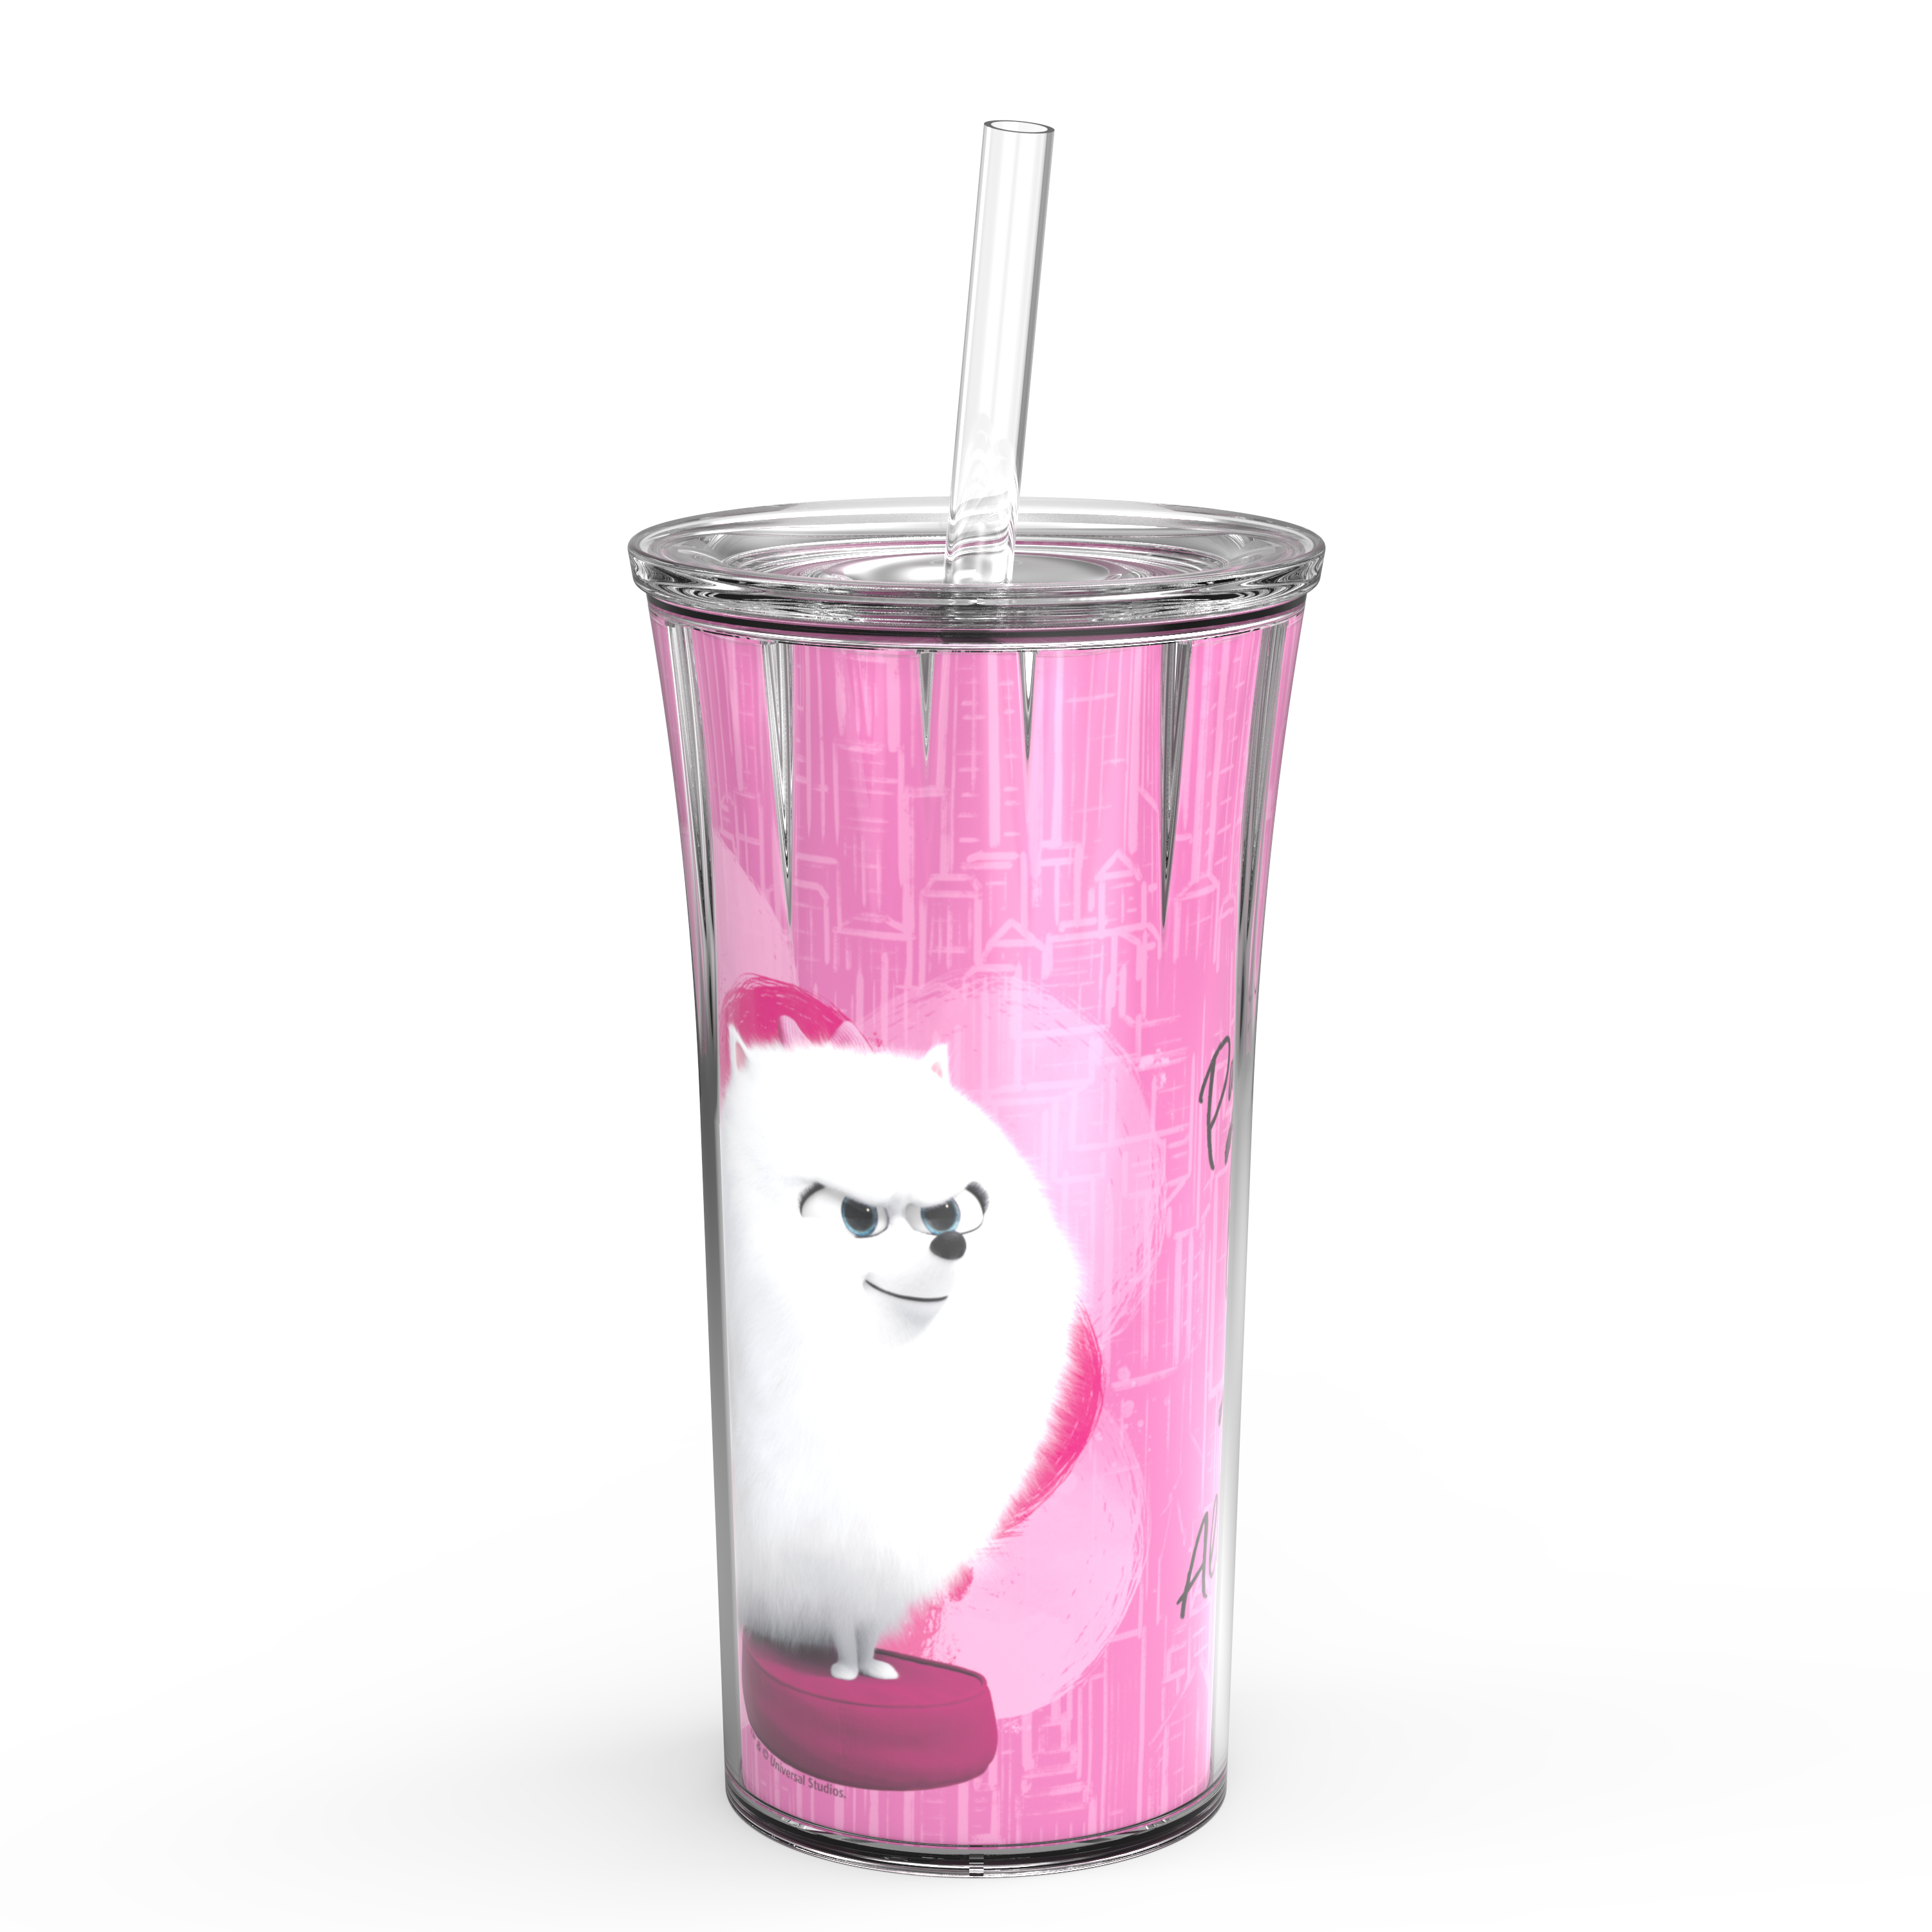 Secret Life Of Pets 2 20 ounce Insulated Tumbler, Gidget slideshow image 1